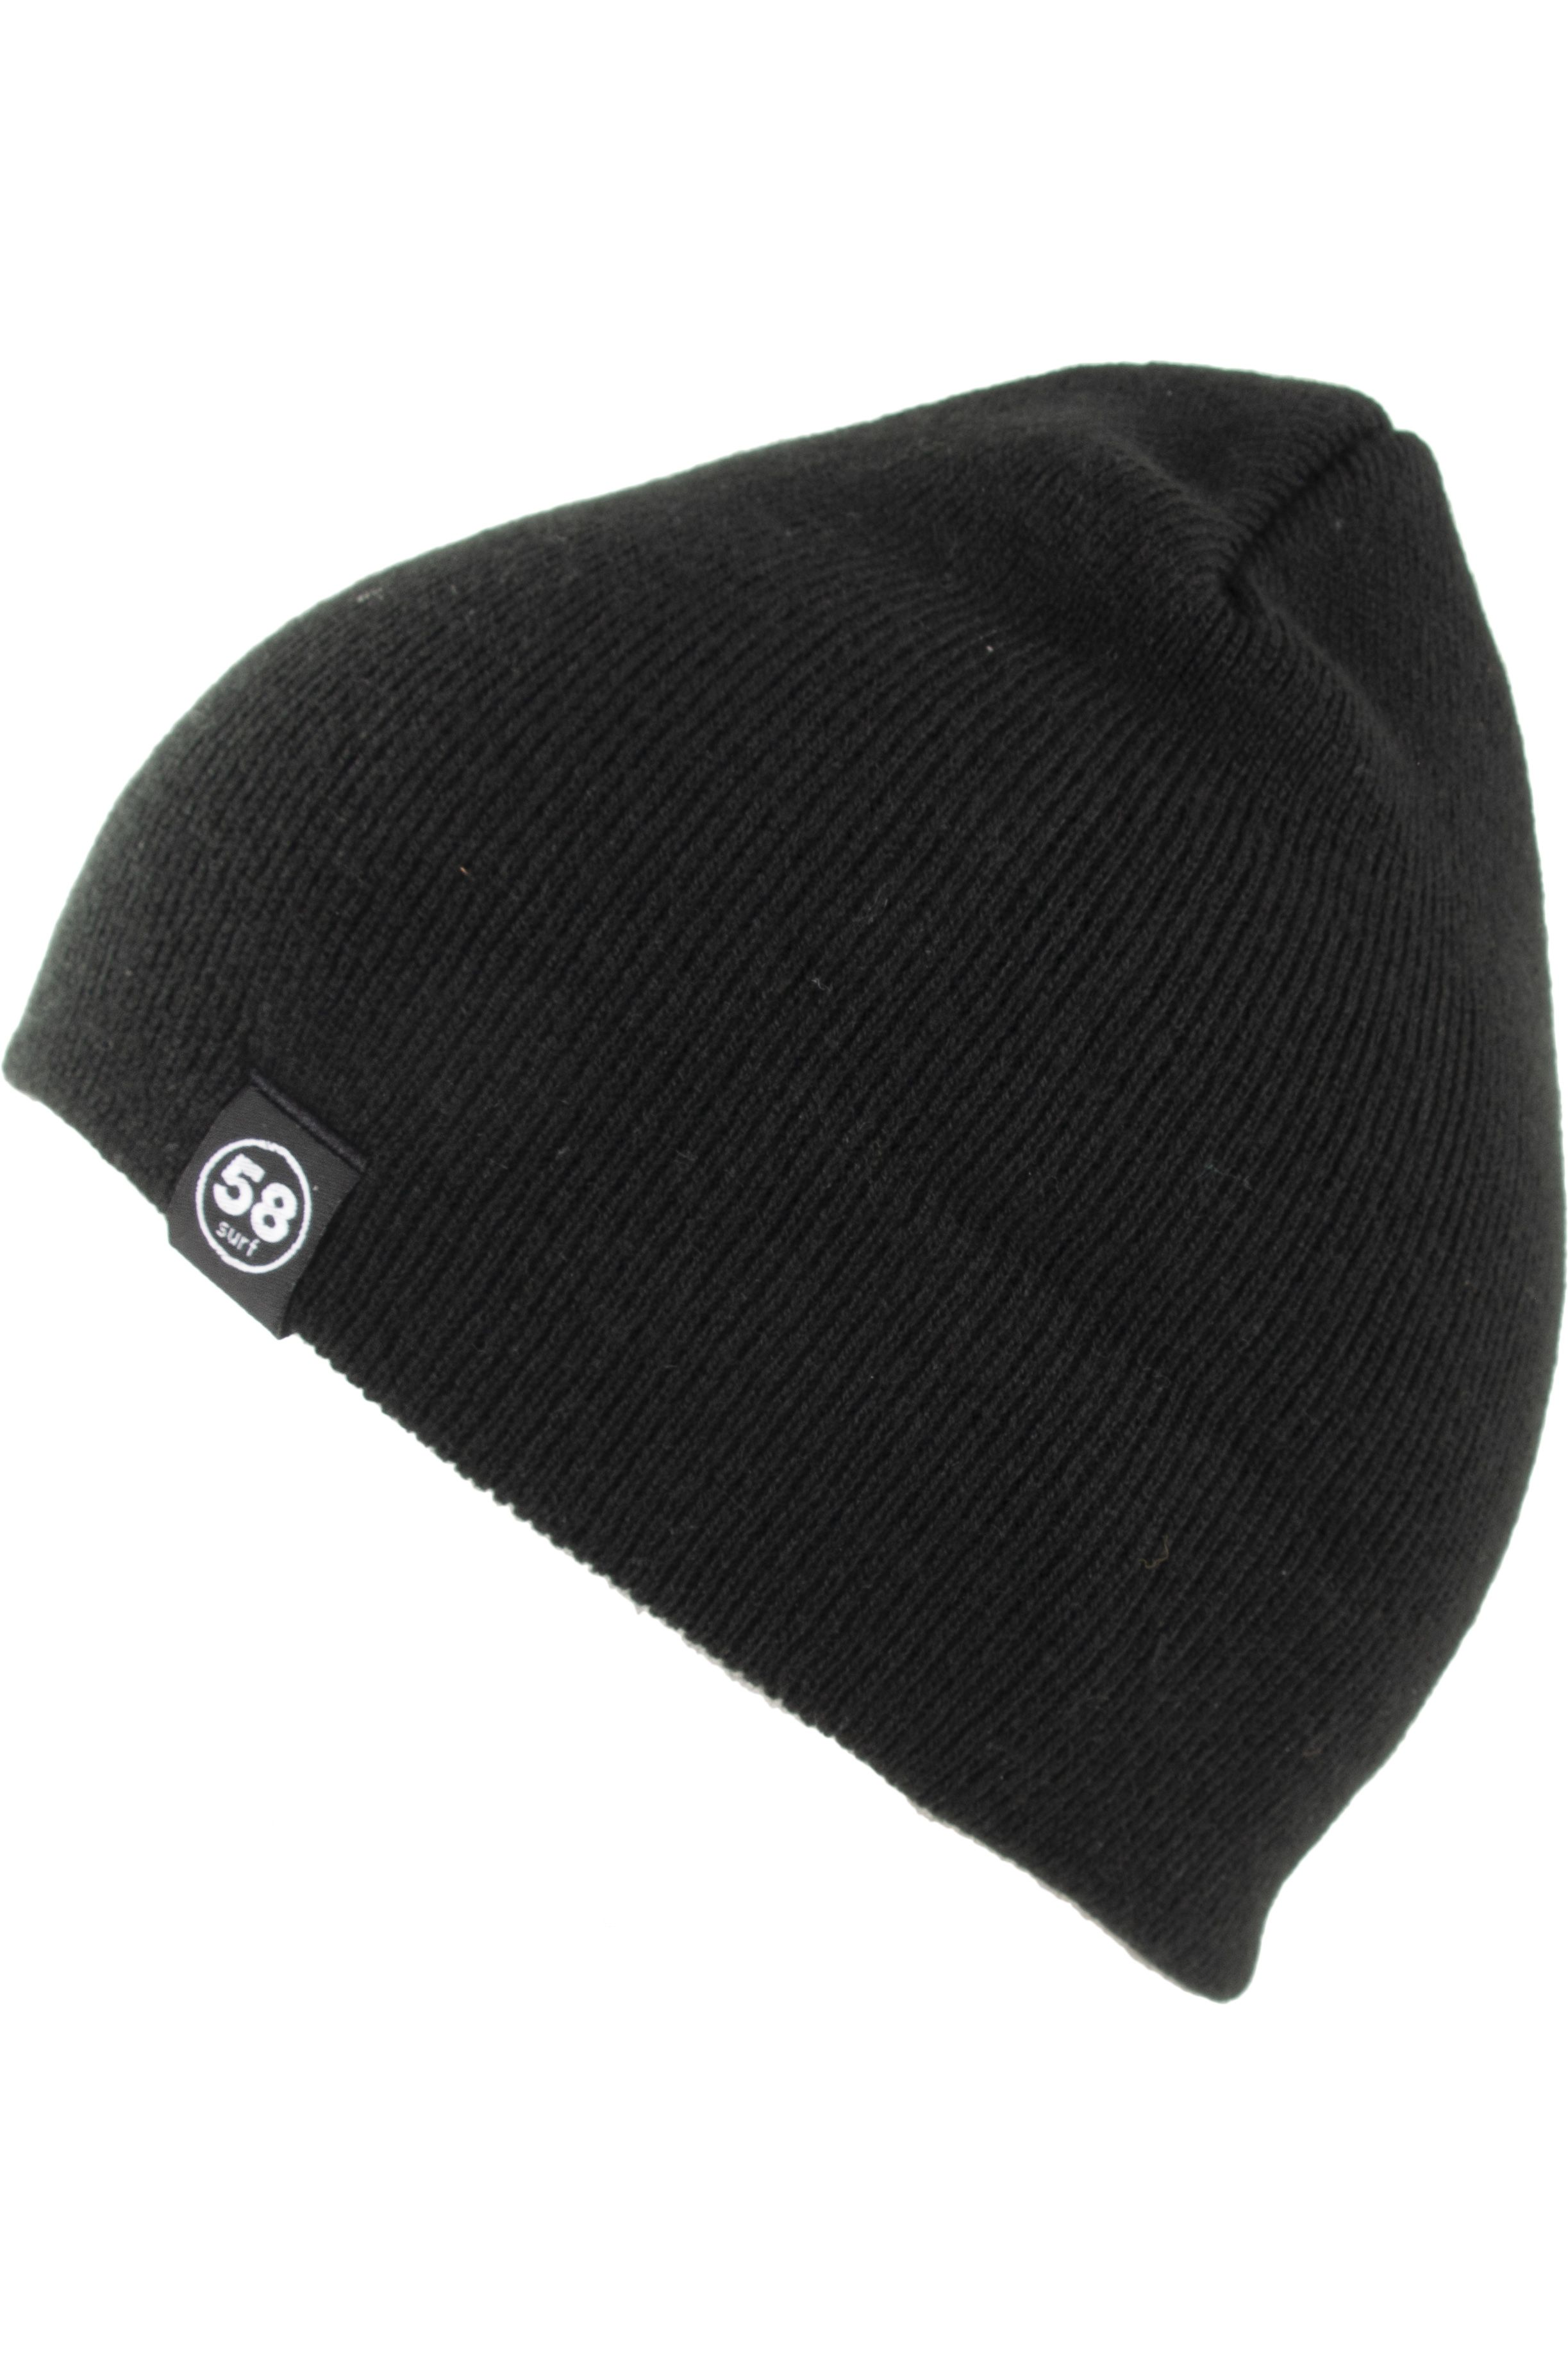 Gorro 58 Surf BREEZE Black